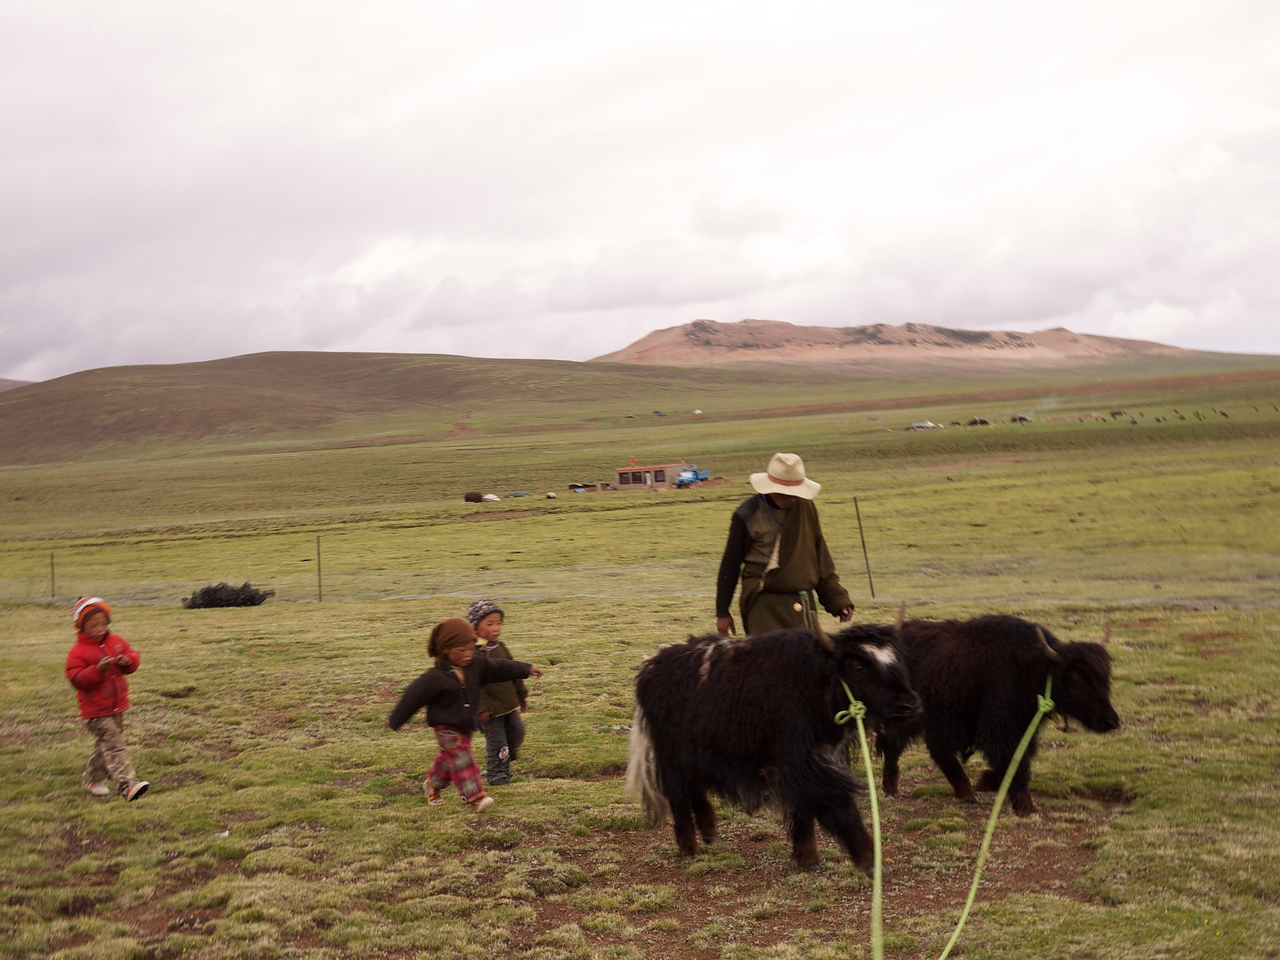 this is a picture i took of me wrangling the yaks, only i'm not in it .  it's easiest to wrangle when other people shoo the yaks from behind.